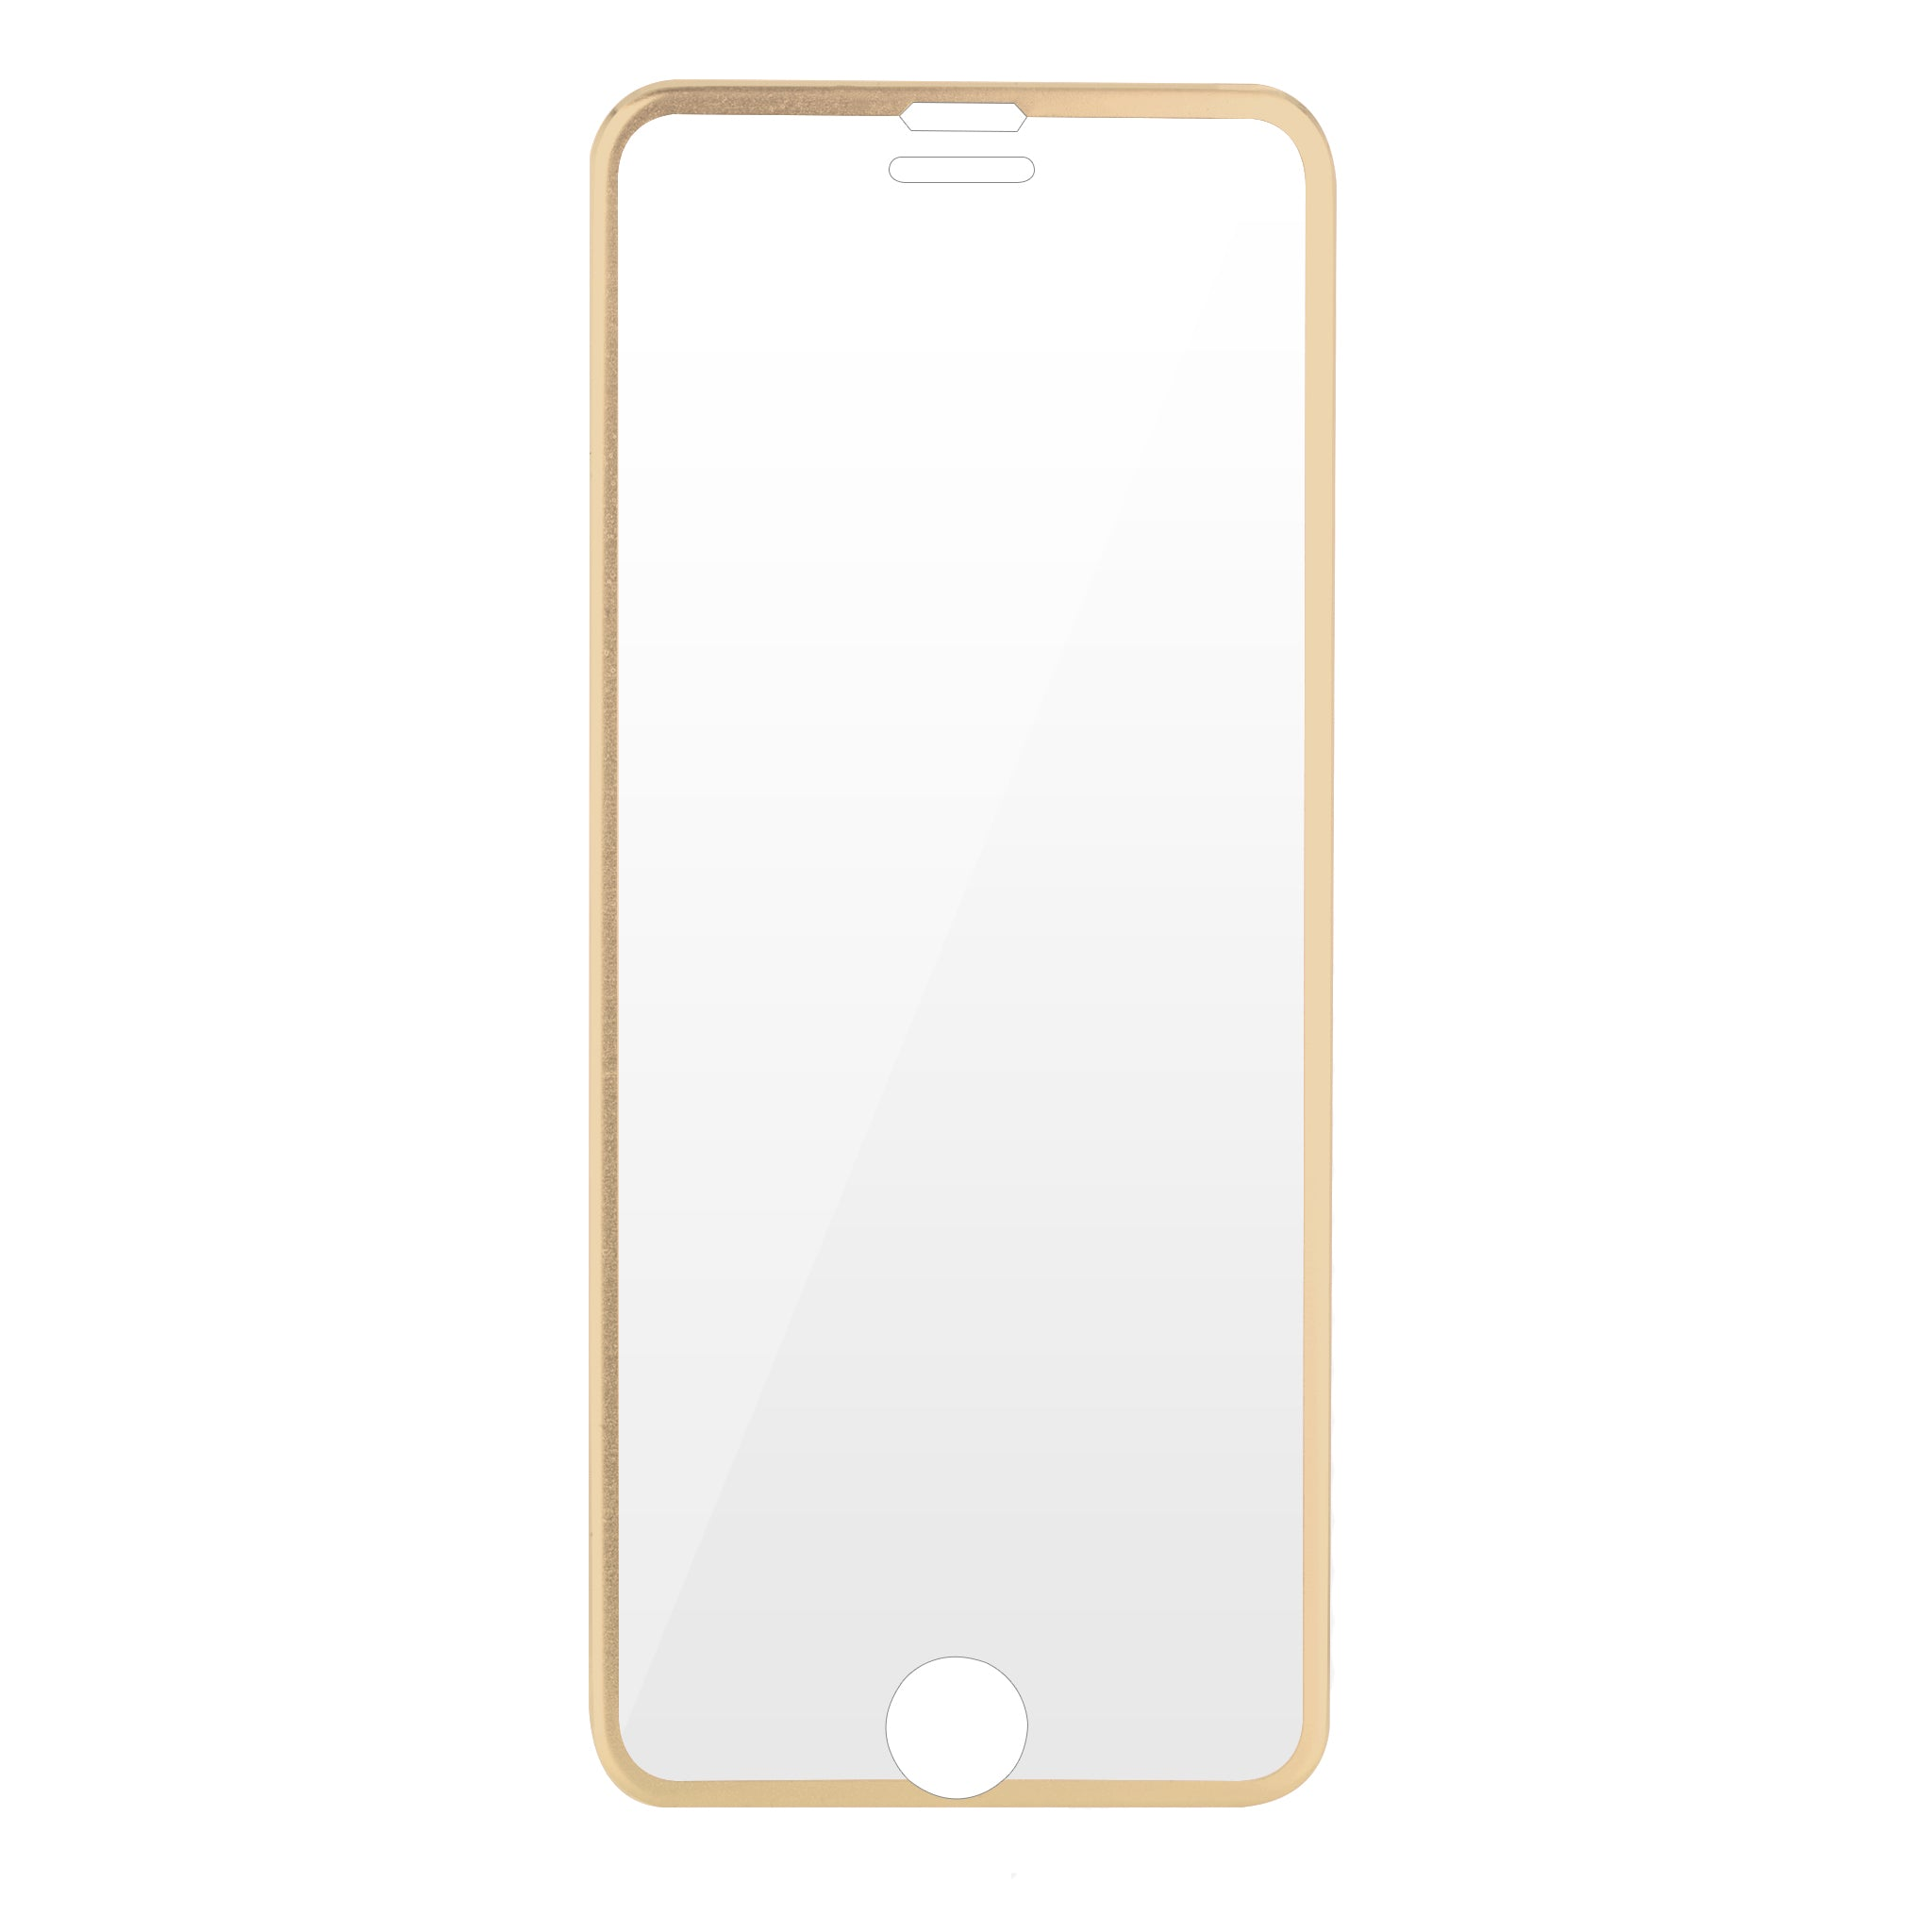 low priced 88c3c 8ff6e HAUTE Gold iPhone Compatible Metallic Rim Screen Protector